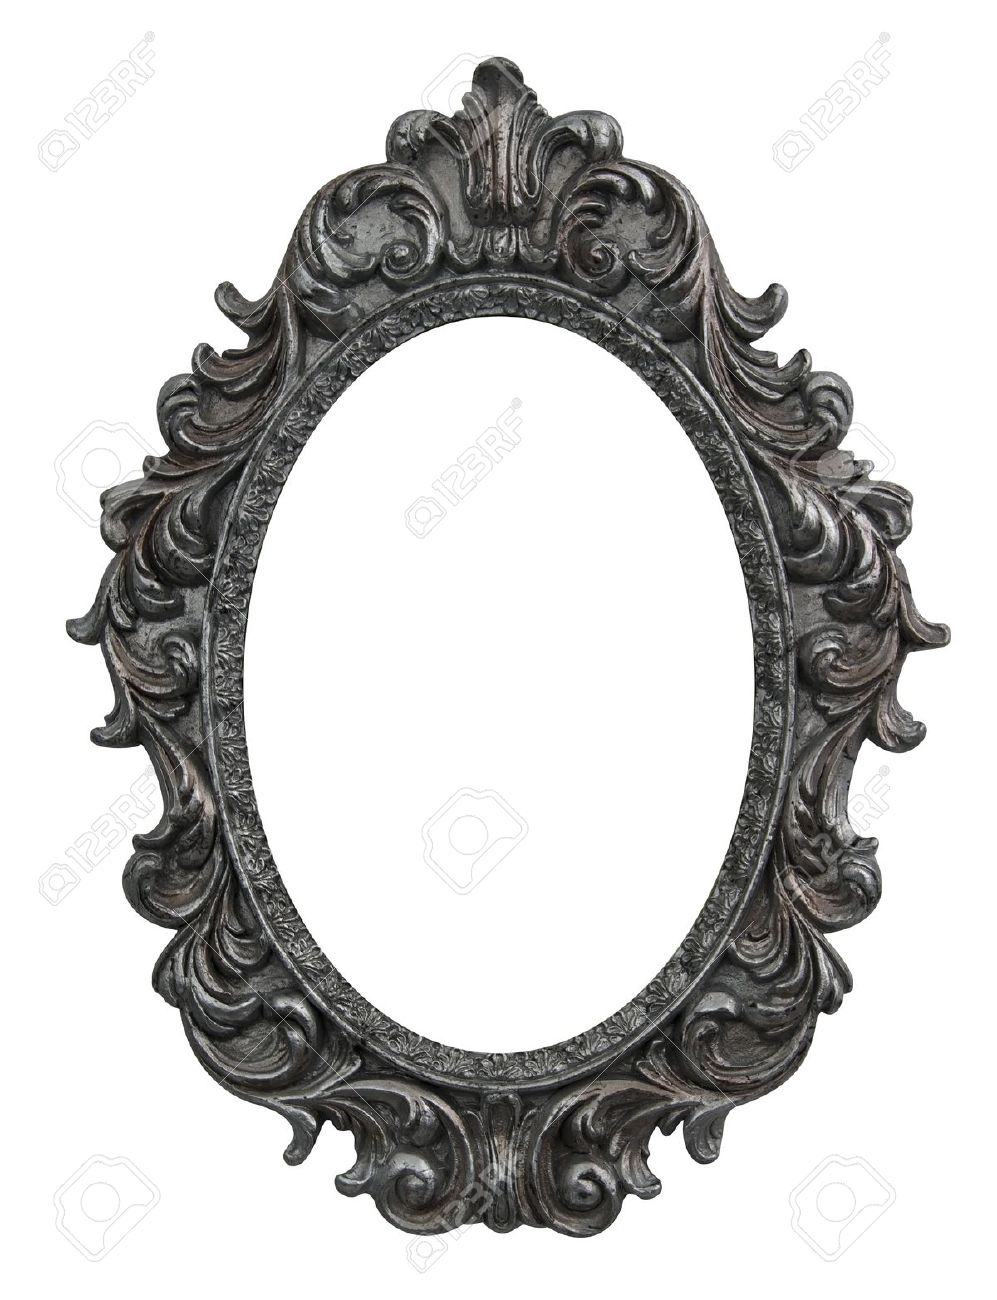 Baroque Oval Frame With Silver Leafs Stock Photo, Picture And ...